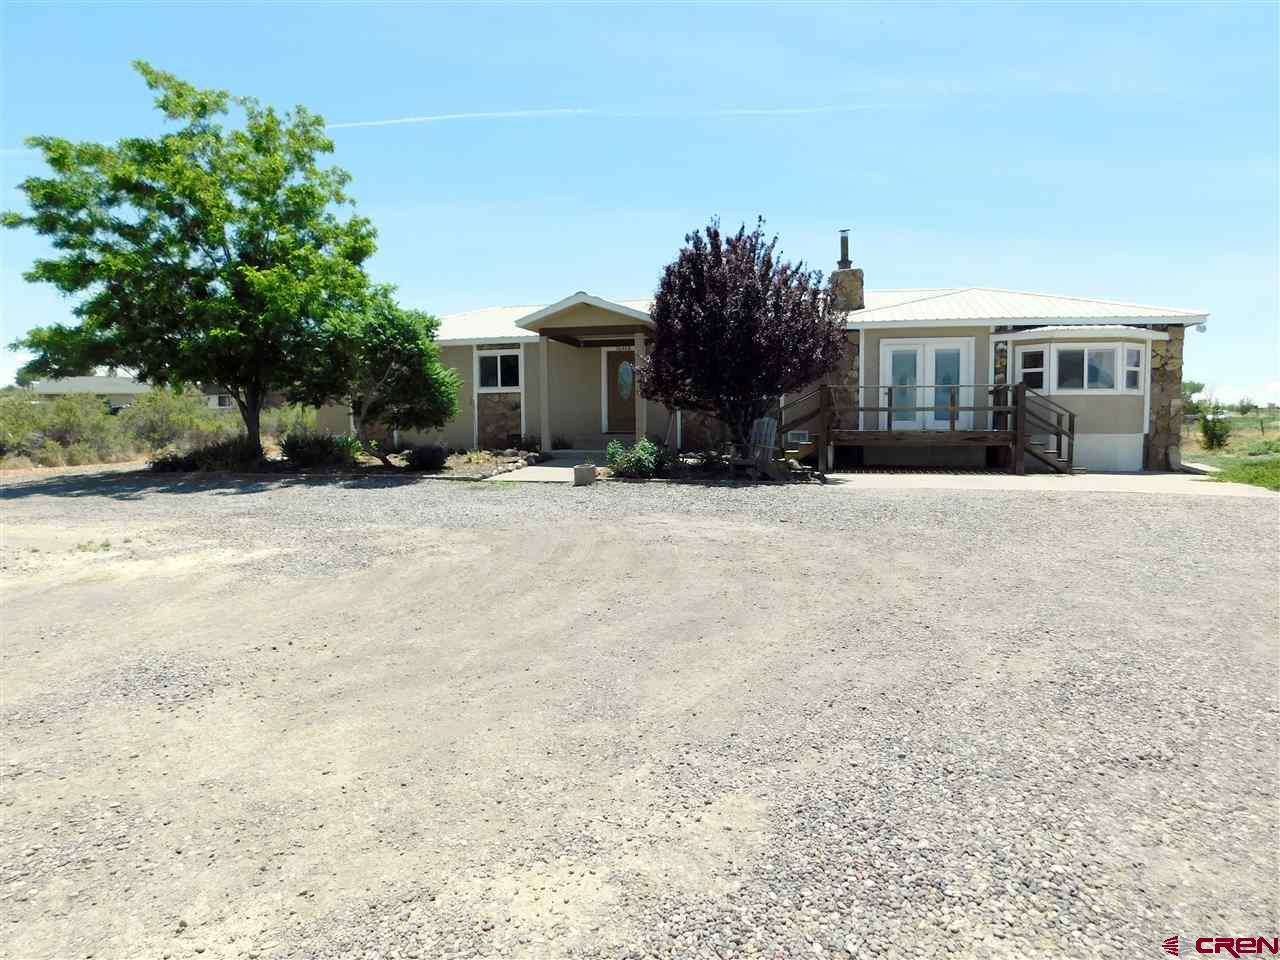 Stucco and rock sided home on 1.5 acres with nice views of the Grand Mesa. Large covered back patio, metal roof, partially fenced and landscaped. Fantastic oversized 2 car detached garage with workshop area. Cozy fireplace accents the living room. Large kitchen with sliding glass doors to covered patio. This home offers two master suites on each side of the house. The 3/4 bathroom has been recently remodeled with tiled shower and flooring. The second master area has large picture windows, private deck, sitting area, large walk in closet and five piece master bathroom. Tankless gas hot water heater keeps the hot water flowing for the whole household. Located within easy driving distance to Delta or Cedaredge.